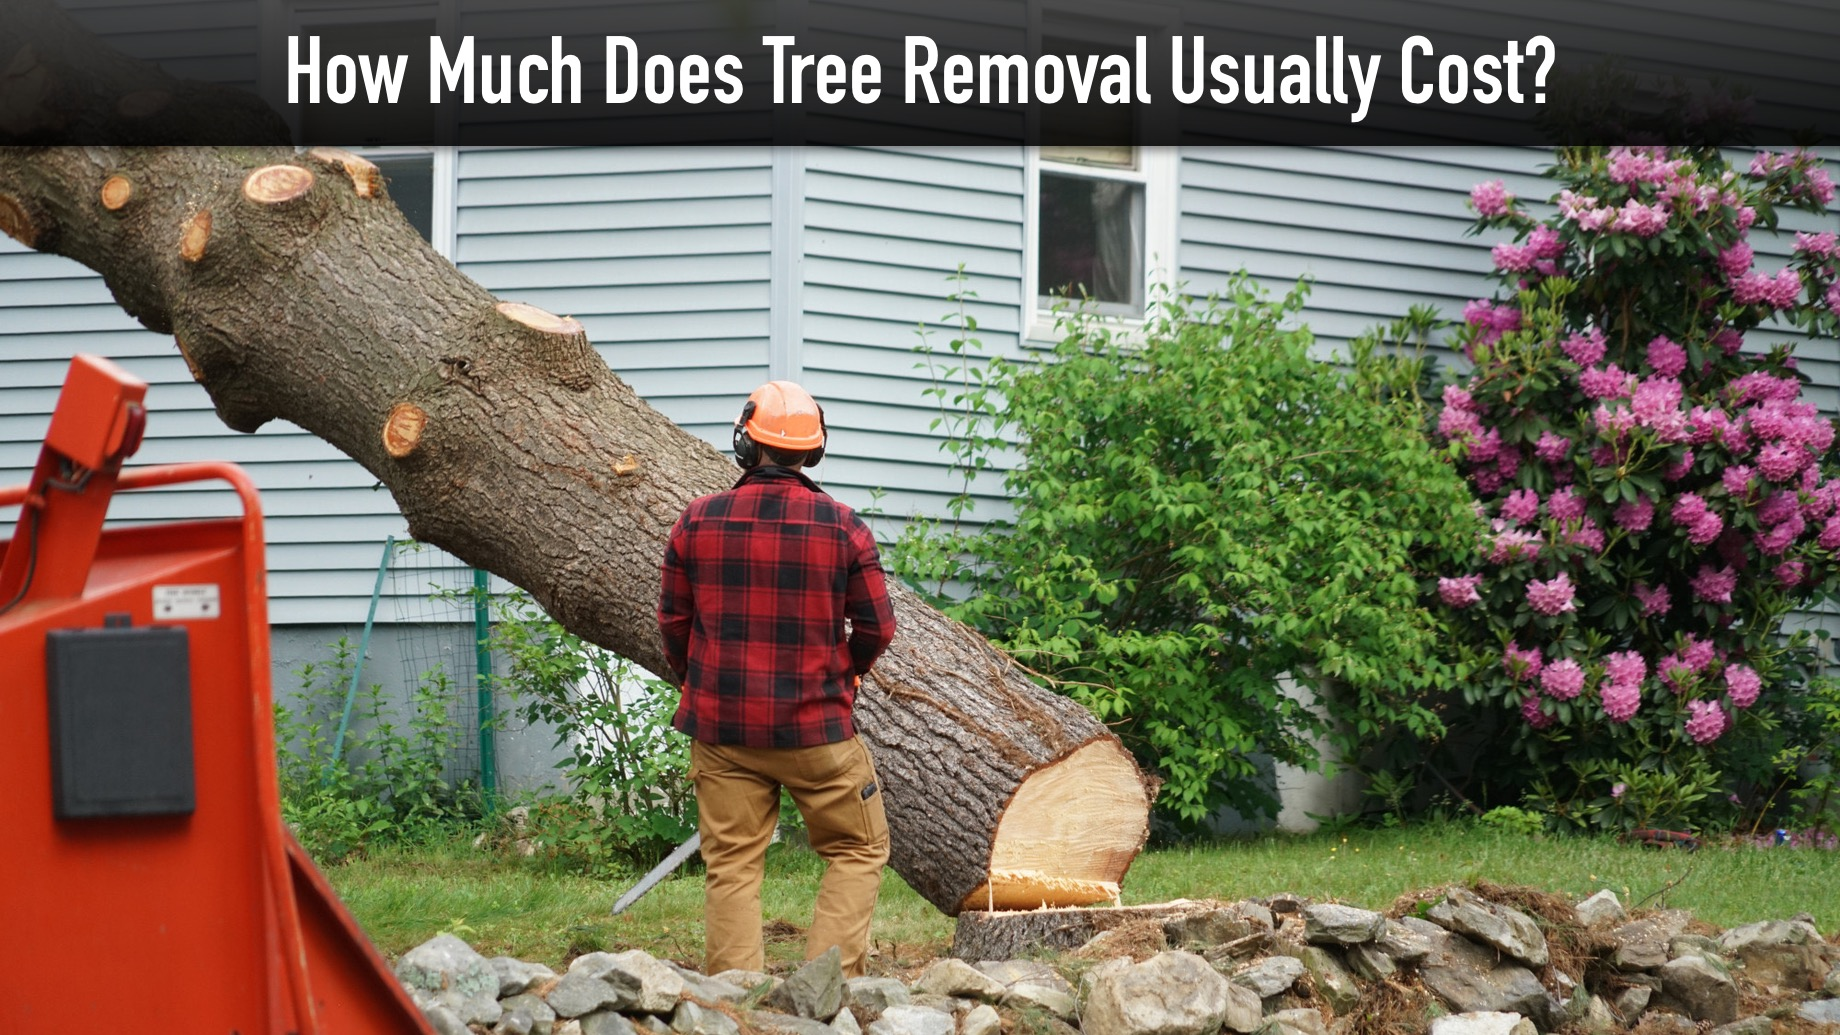 How Much Does Tree Removal Usually Cost?